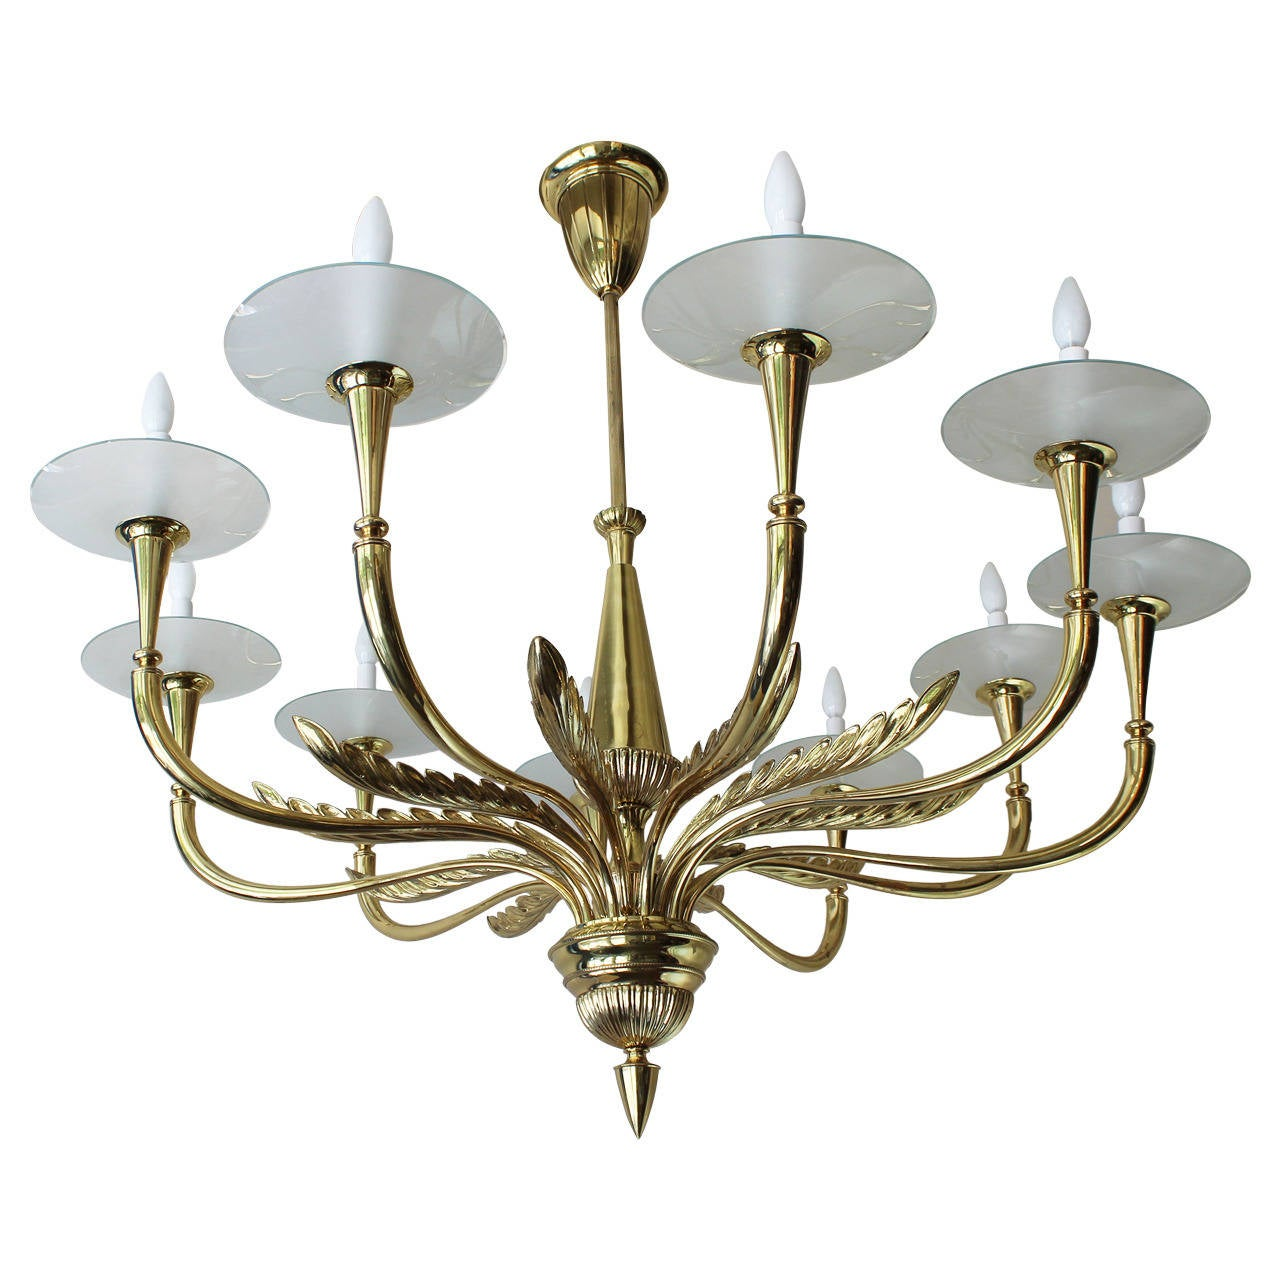 Massive italian regency chandelier for sale at 1stdibs massive italian regency chandelier for sale mozeypictures Choice Image